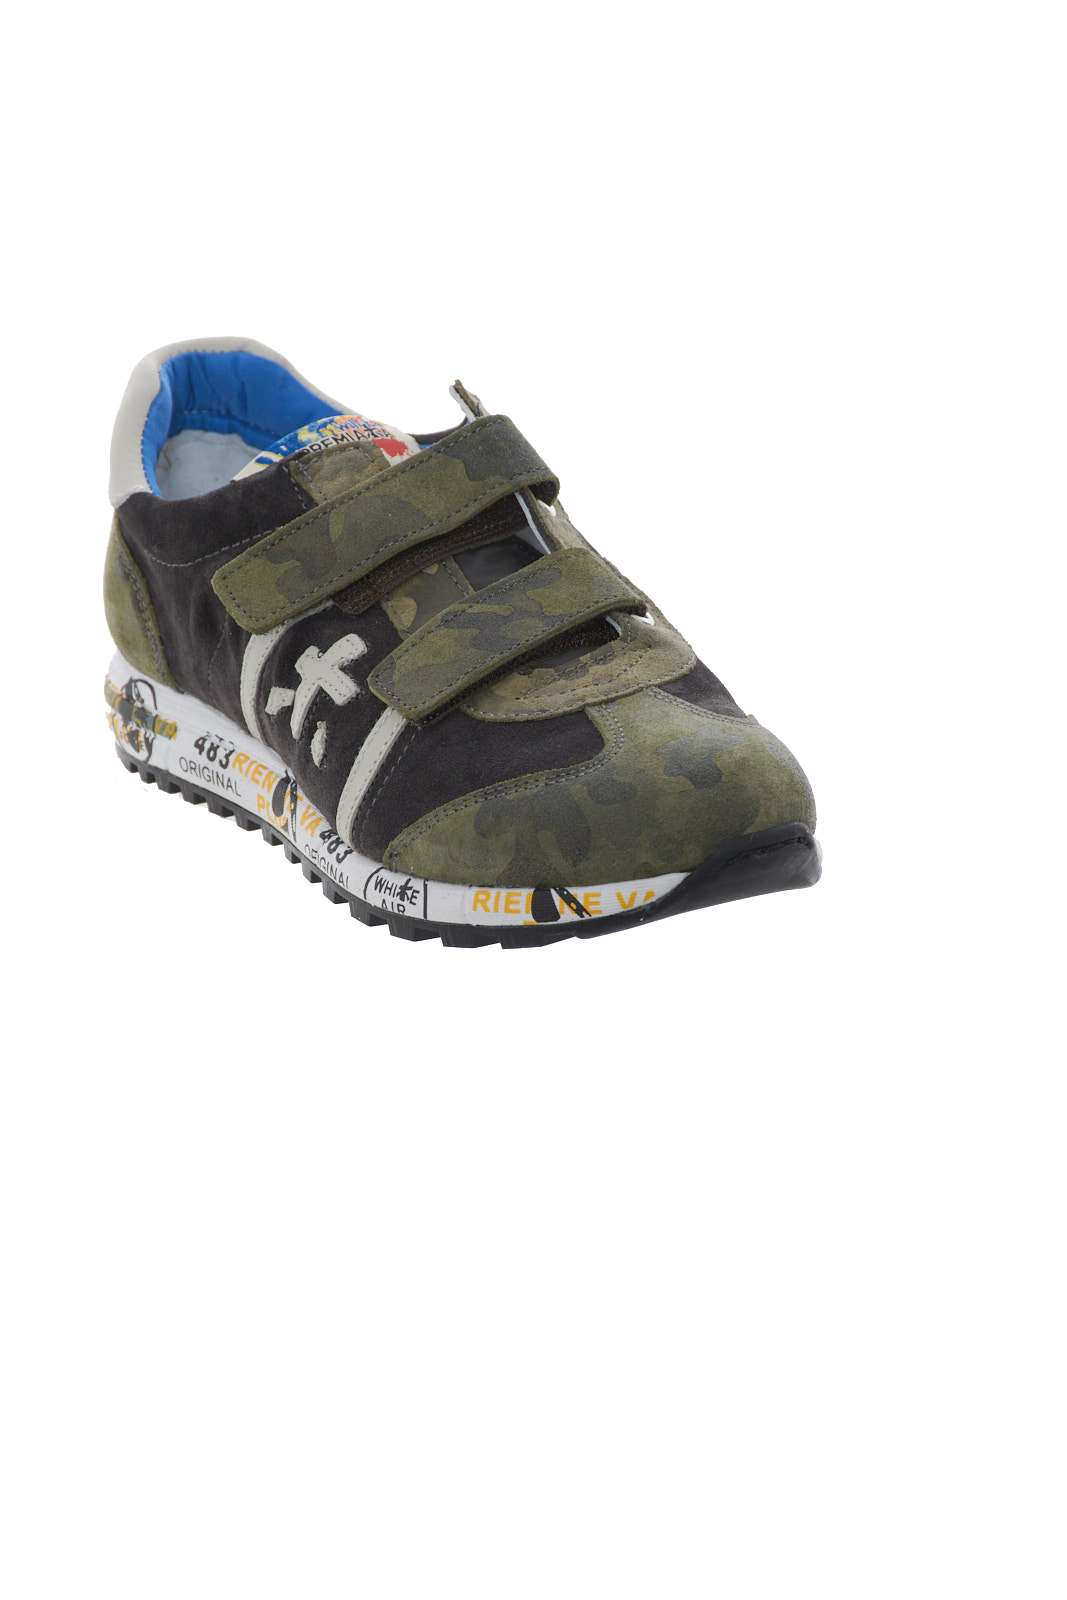 https://www.parmax.com/media/catalog/product/A/I/AI-outlet_parmax-sneakers-bambino-Will-be-Premiata-LUCYV-C.jpg